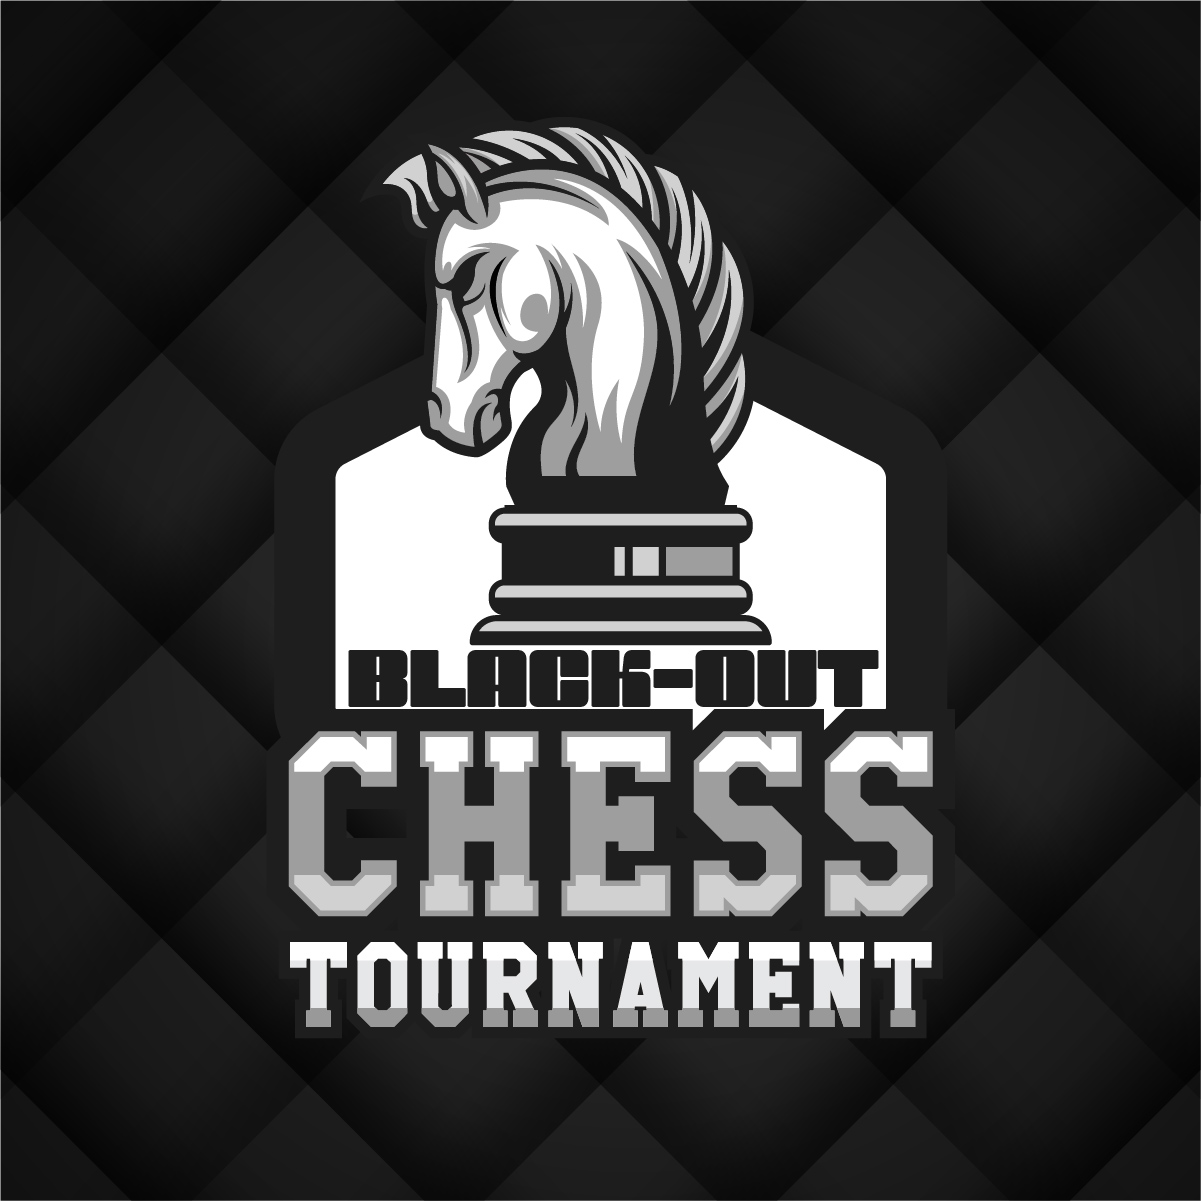 HCISD teams compete in first Black-Out Chess Tournament